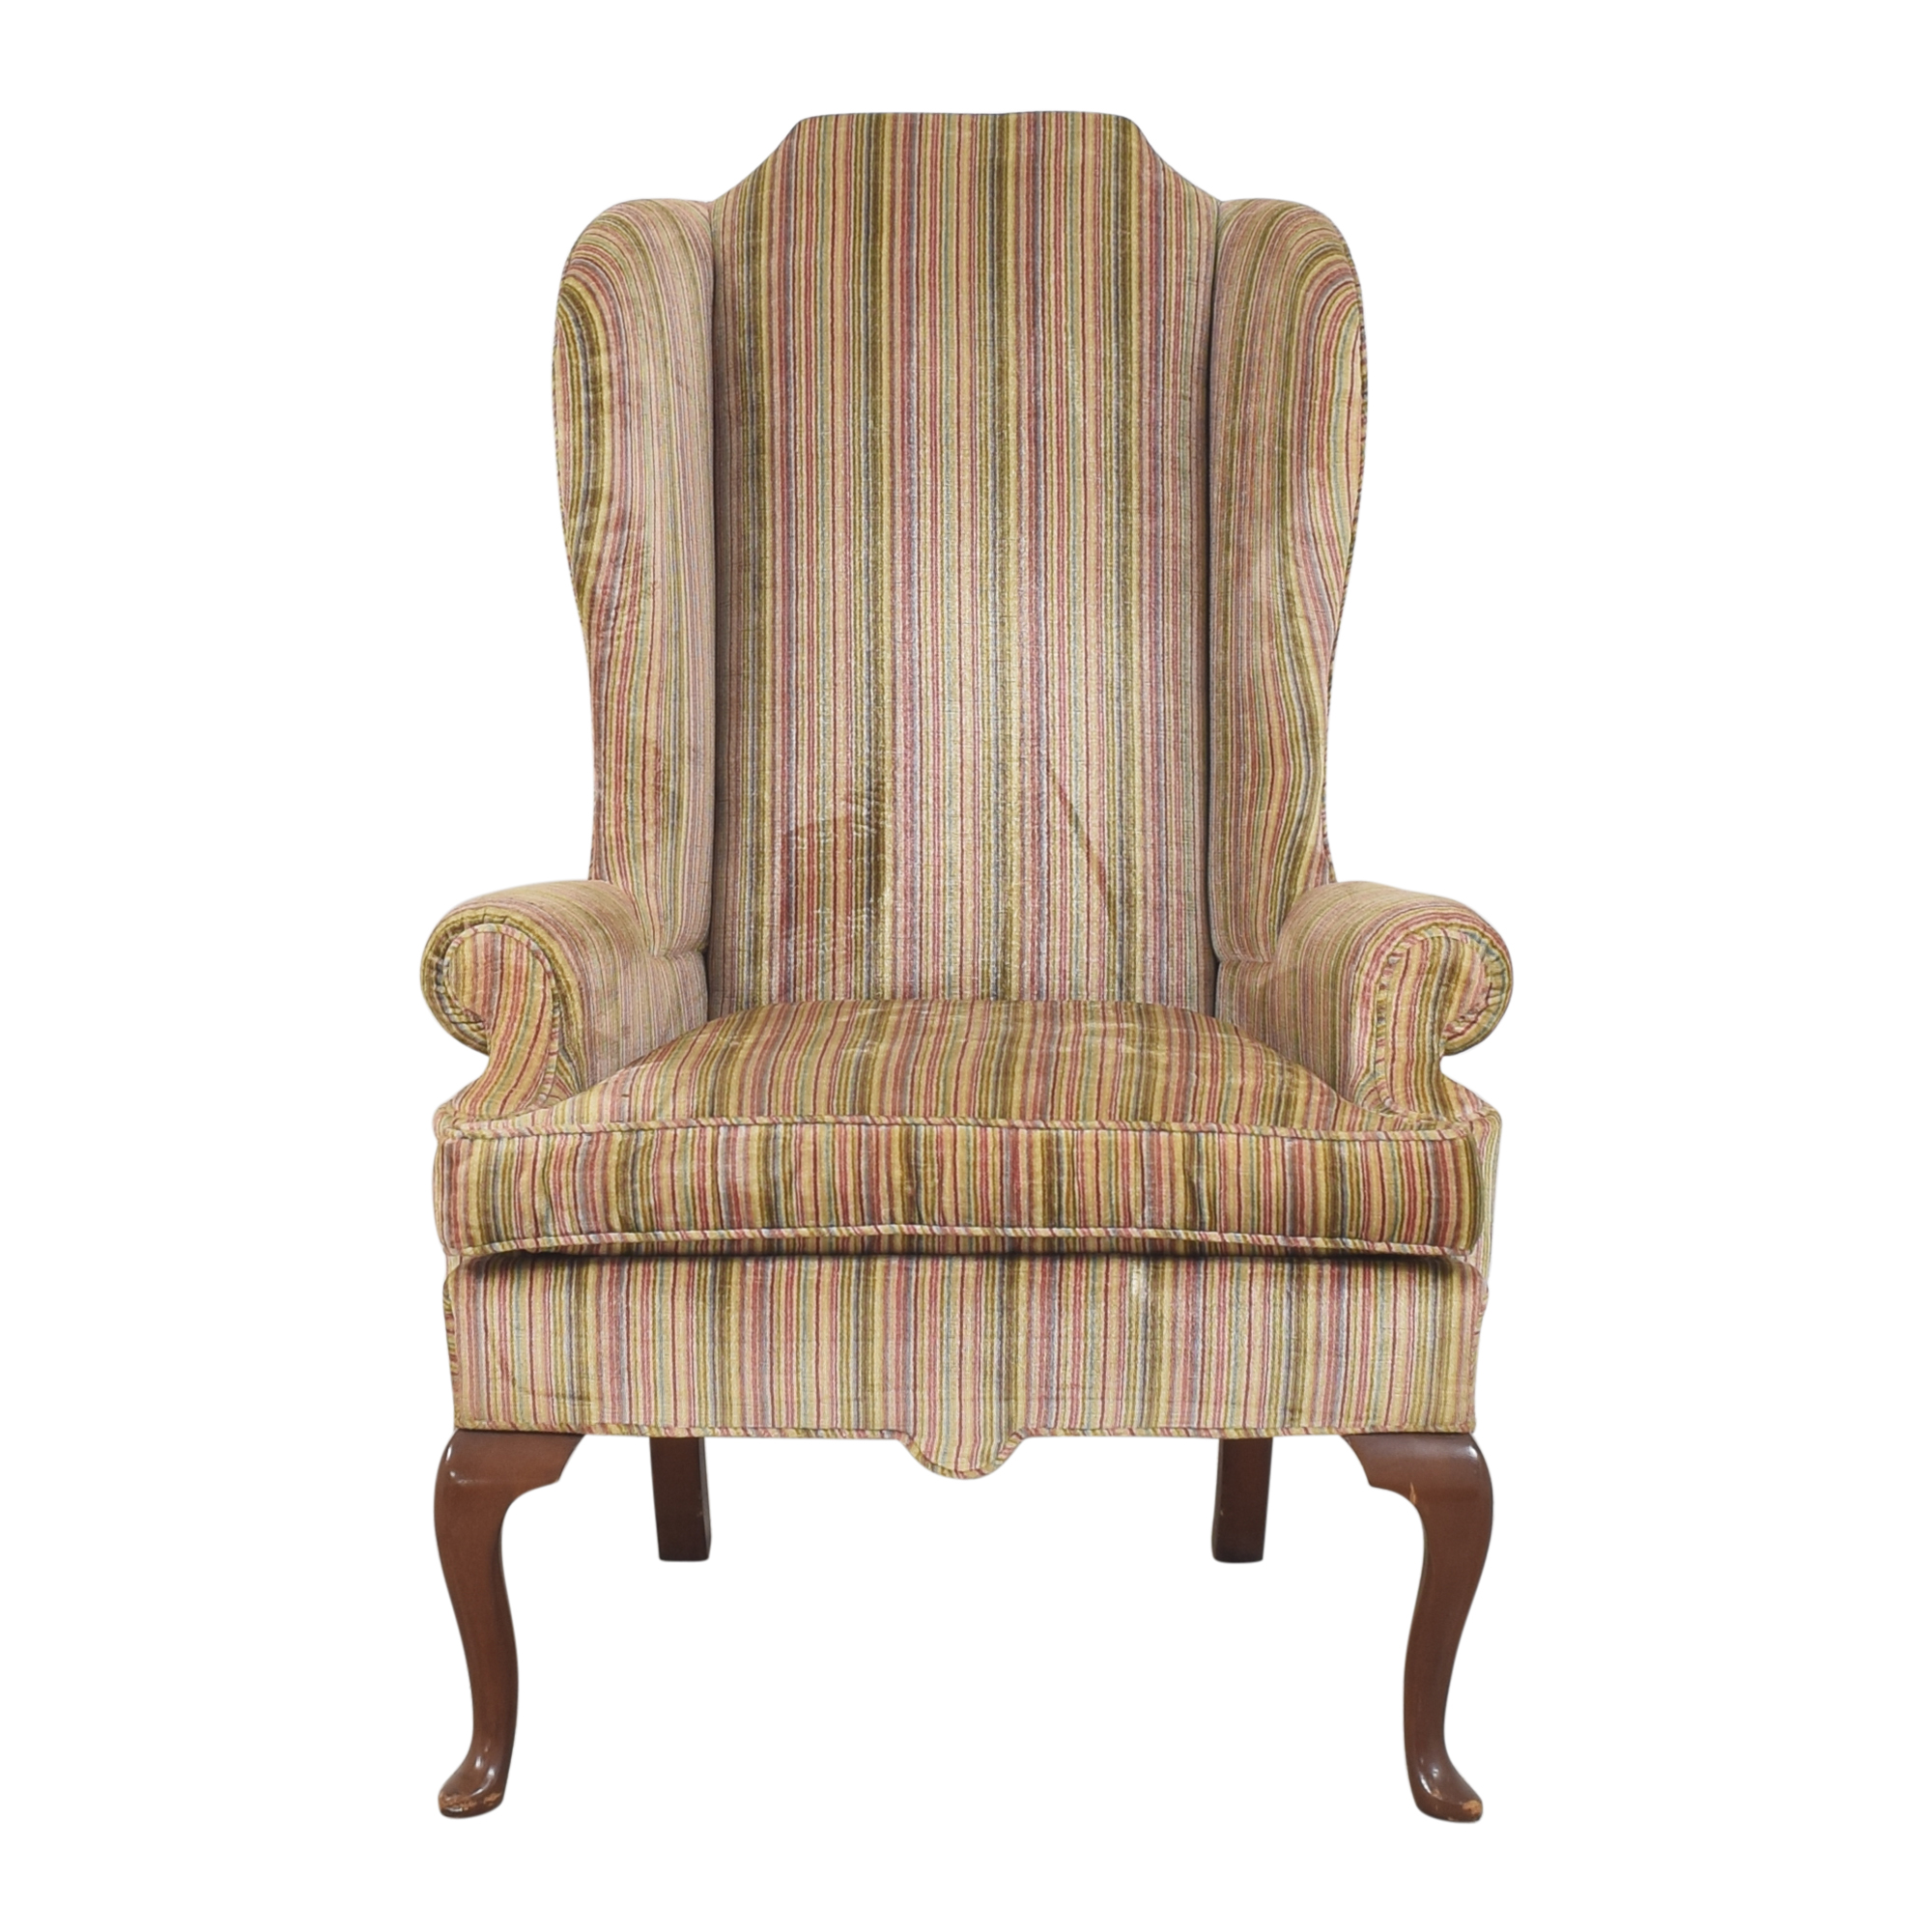 D. Becker & Sons D. Becker & Sons Striped Wing Accent Chair price